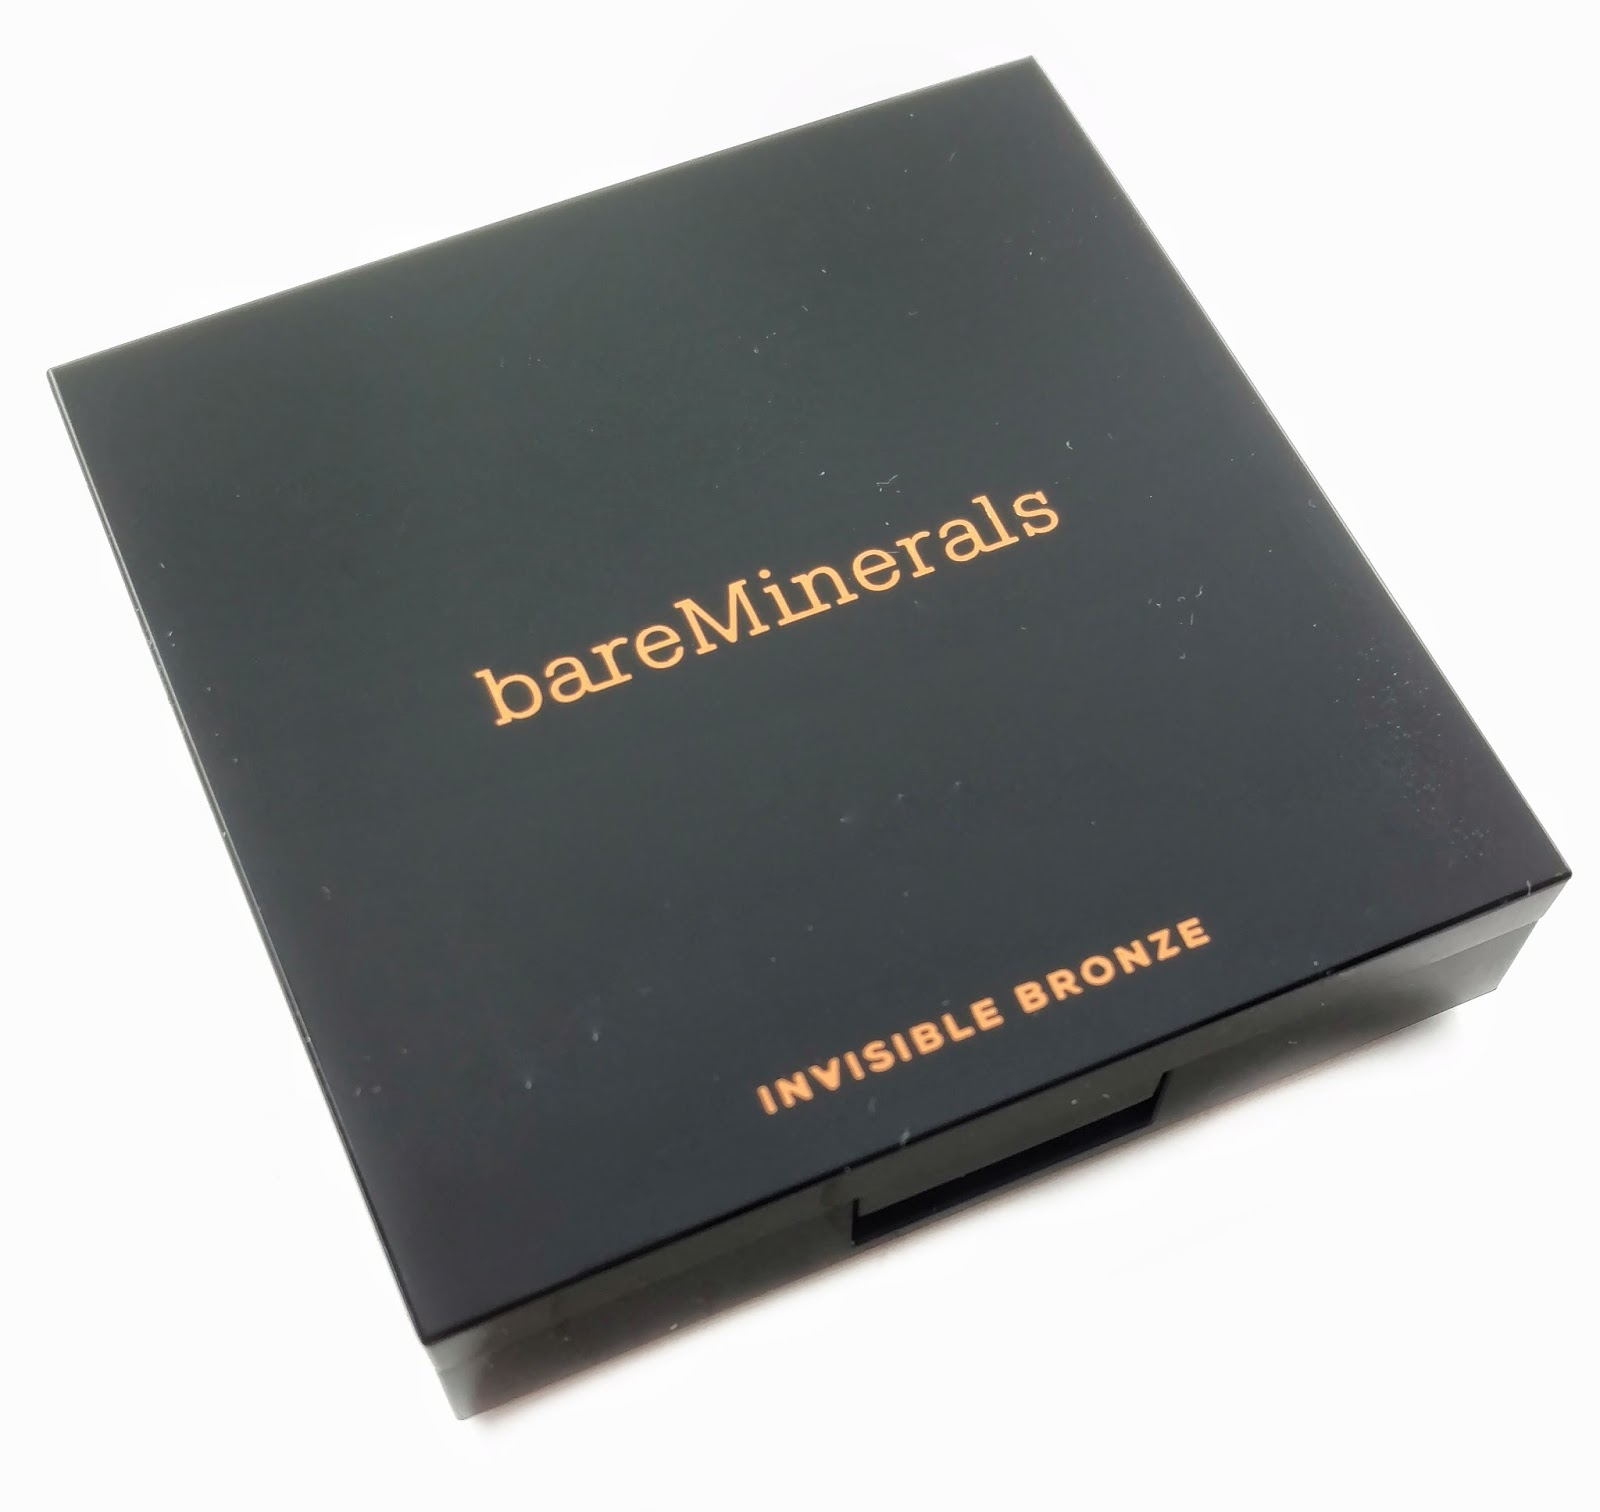 bareminerals invisible bronze packaging